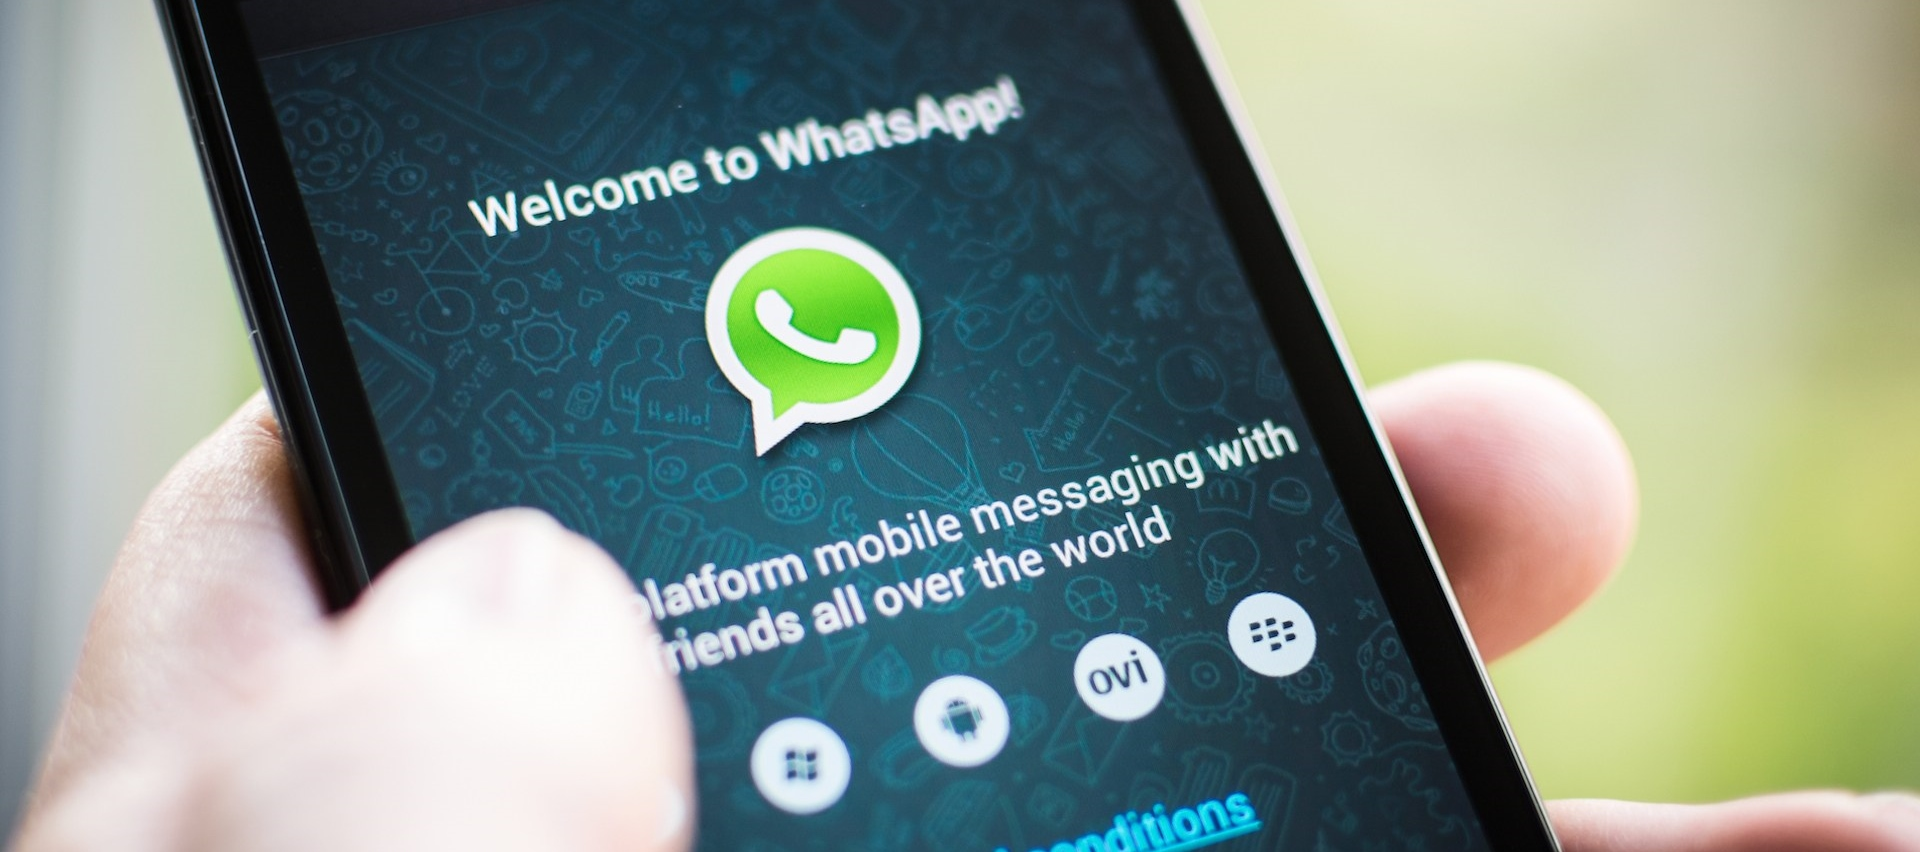 53 Per Cent of People up for Mobile Messaging with Businesses